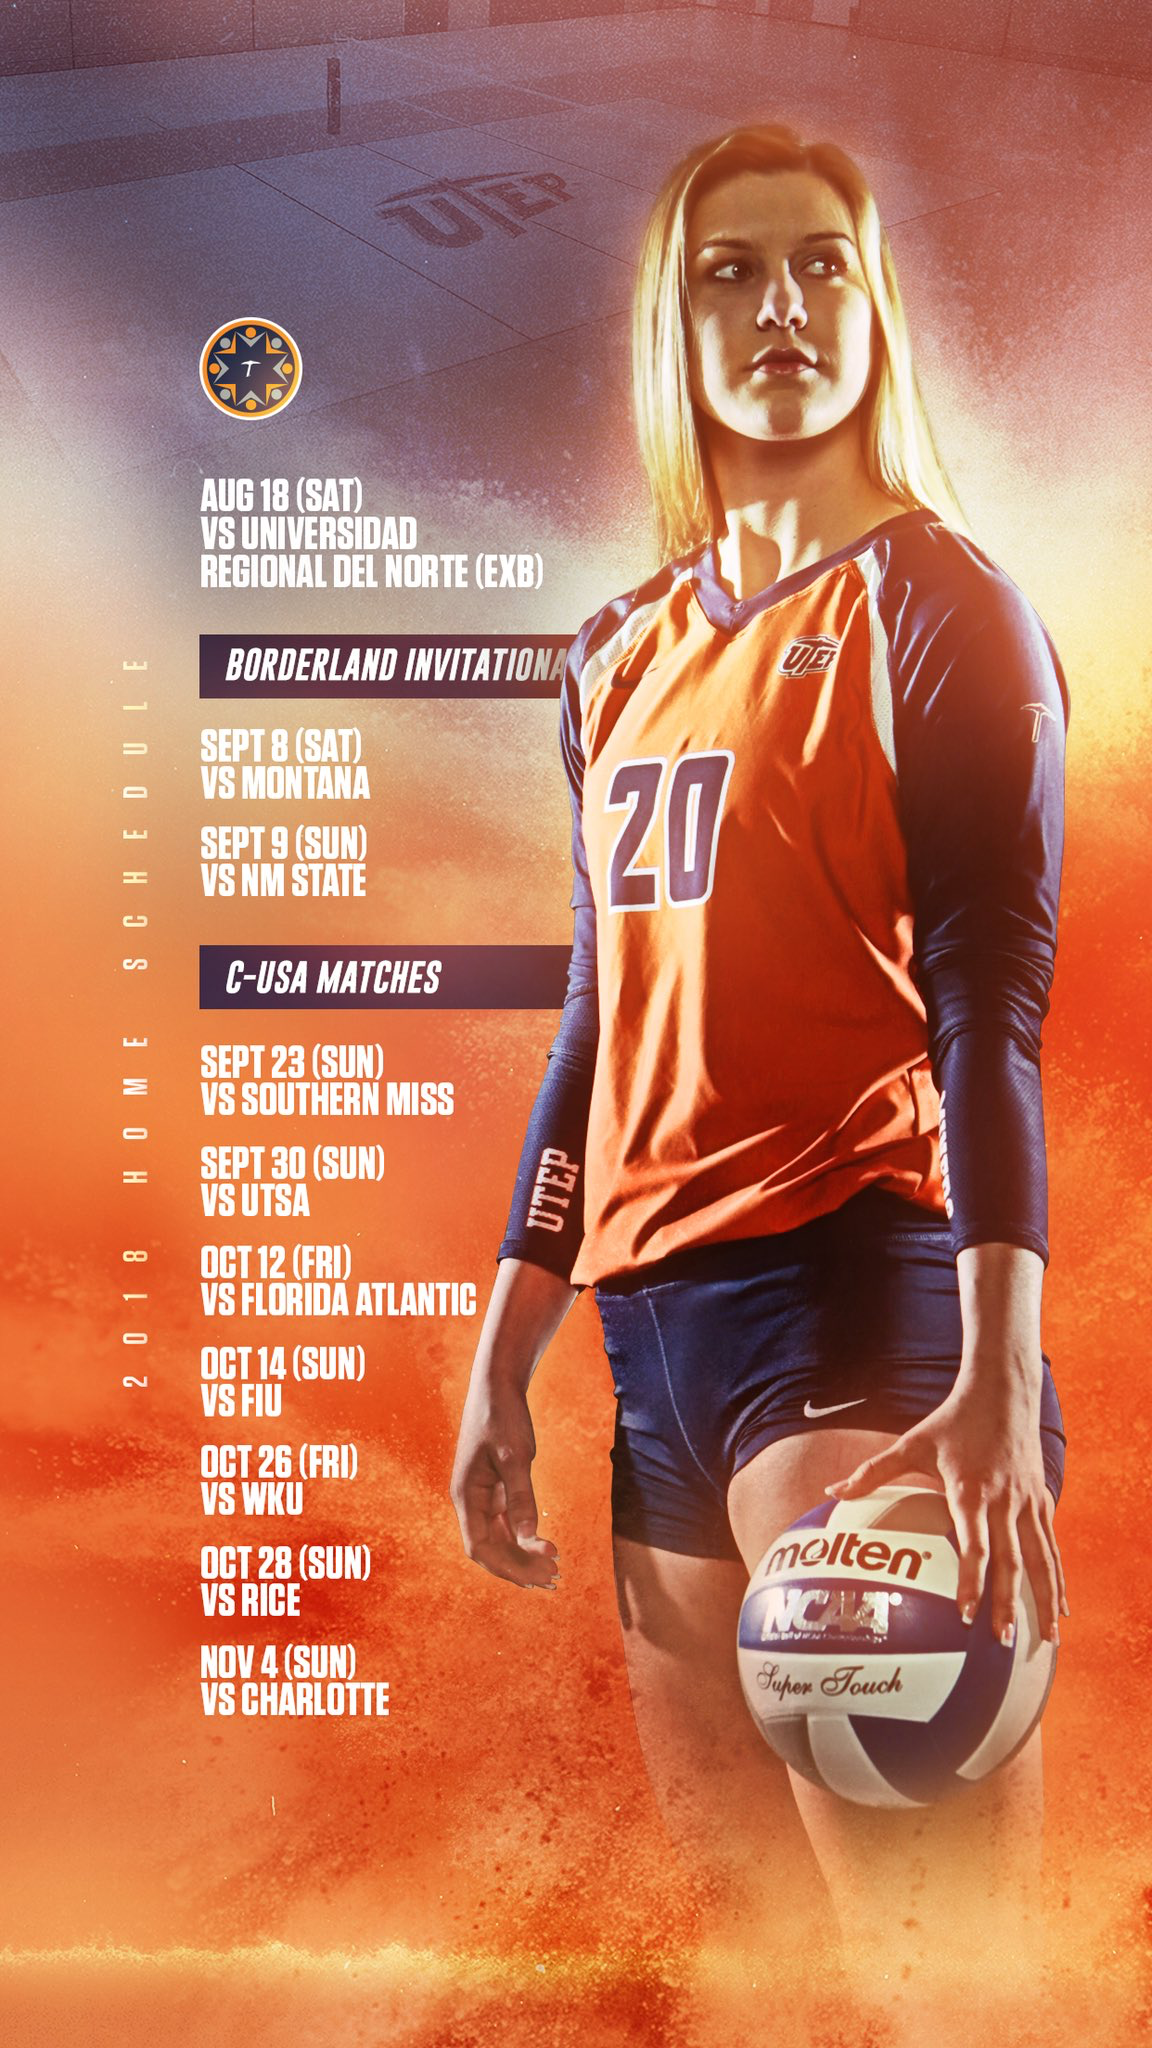 Pin By Matt Cates On Sposters Sports Graphic Design Sports Design Inspiration Sports Graphics